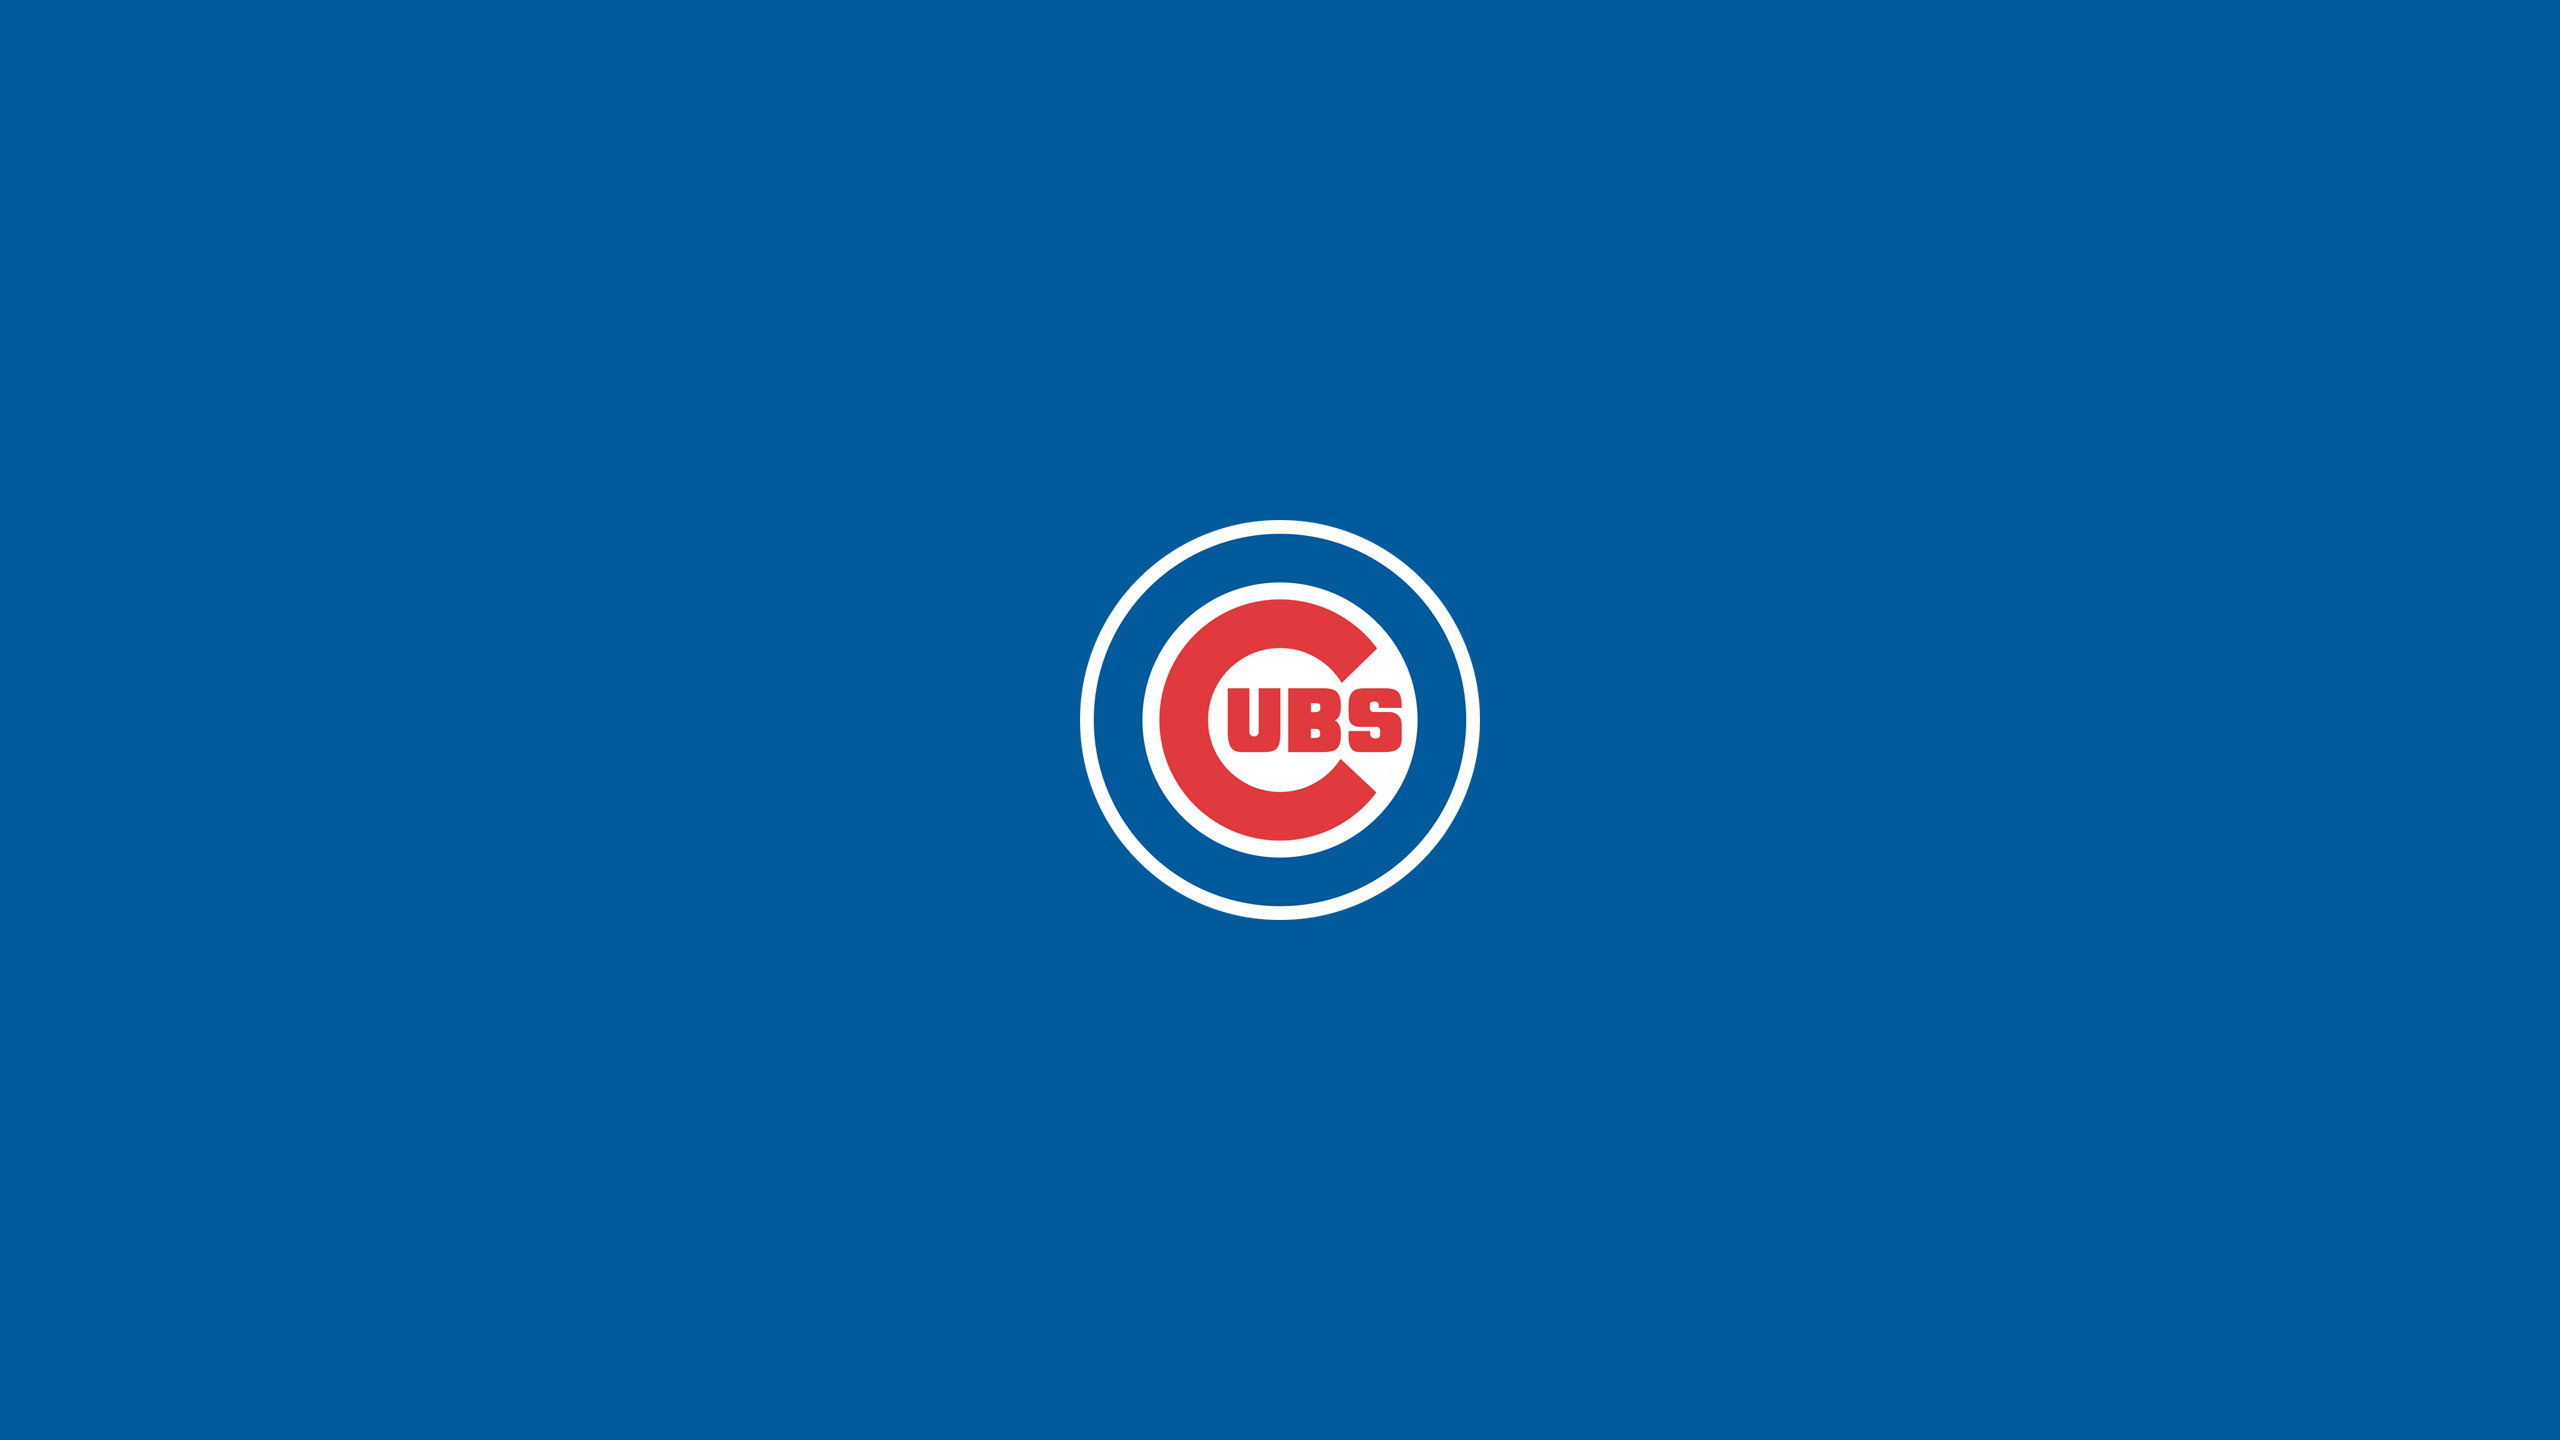 Chicago Cubs Wallpaper Hd: Dachshund Wallpaper For Computer (52+ Images